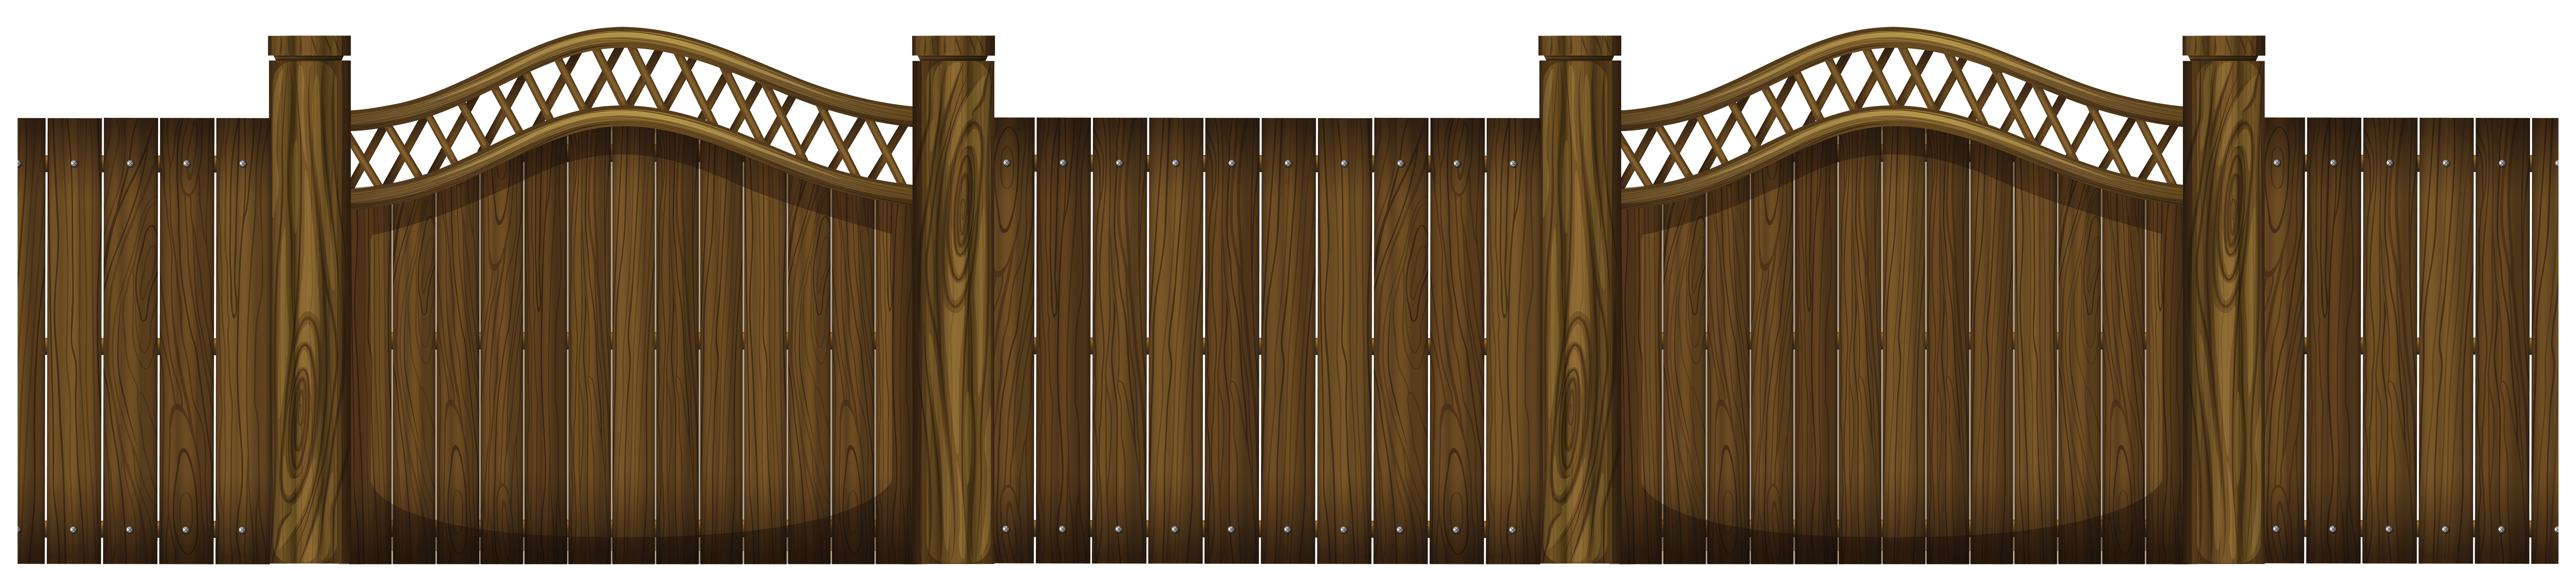 Wooden fort clipart png royalty free stock Gate clipart wooden gate, Gate wooden gate Transparent FREE ... png royalty free stock